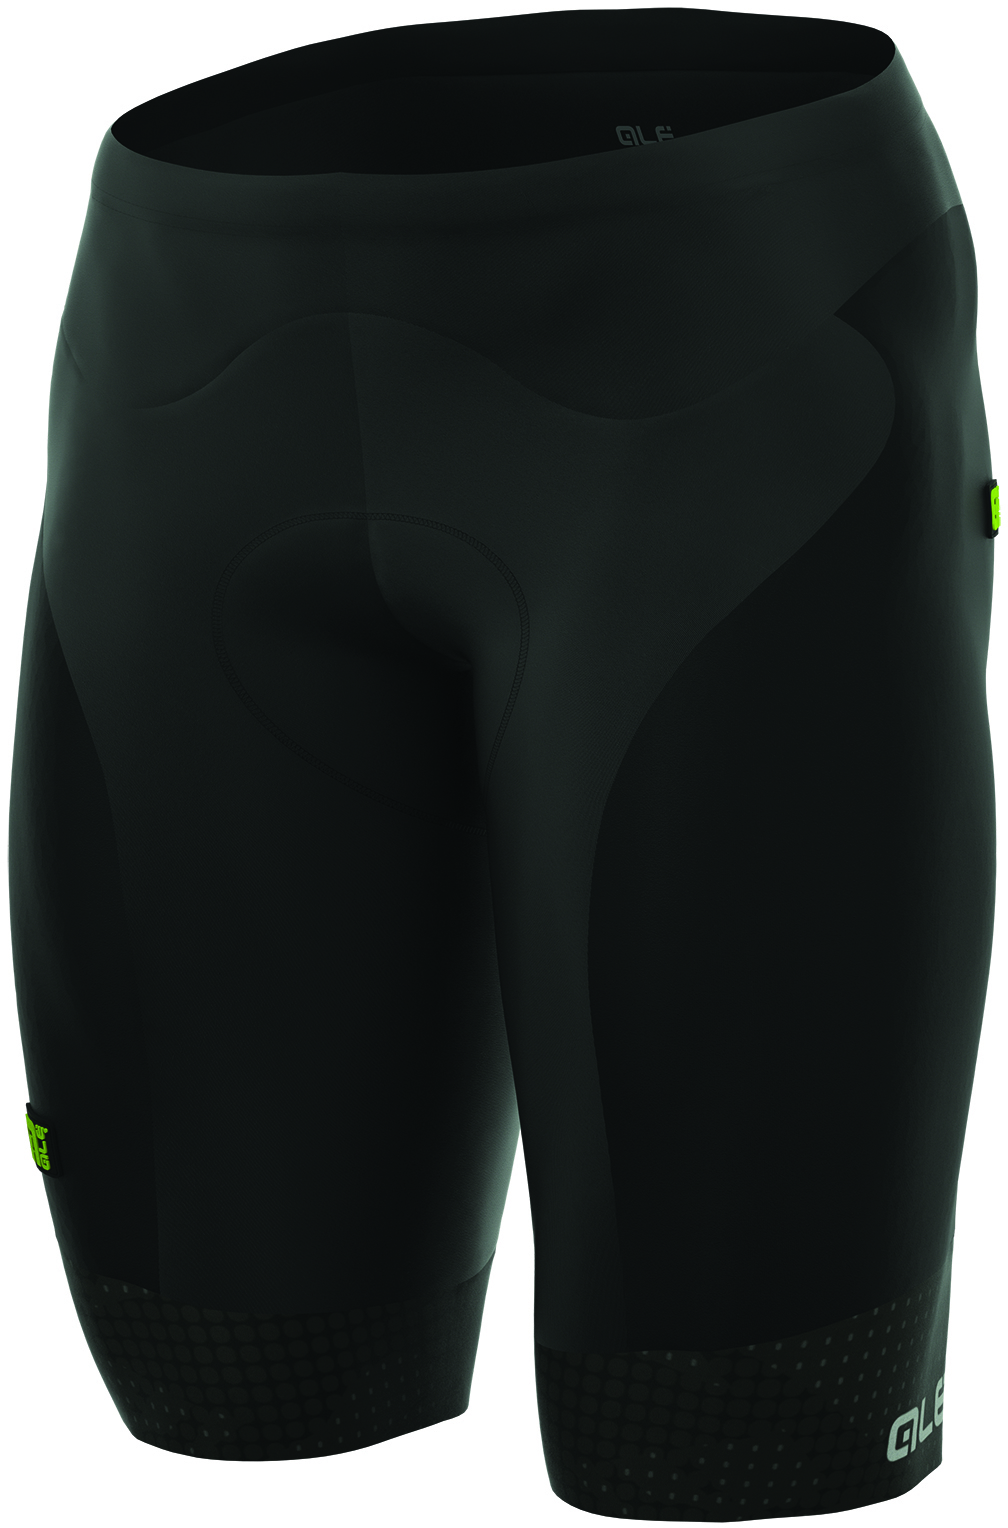 ALÉ FORMULA 1.0 ULTIMATE SHORT Black/Grey